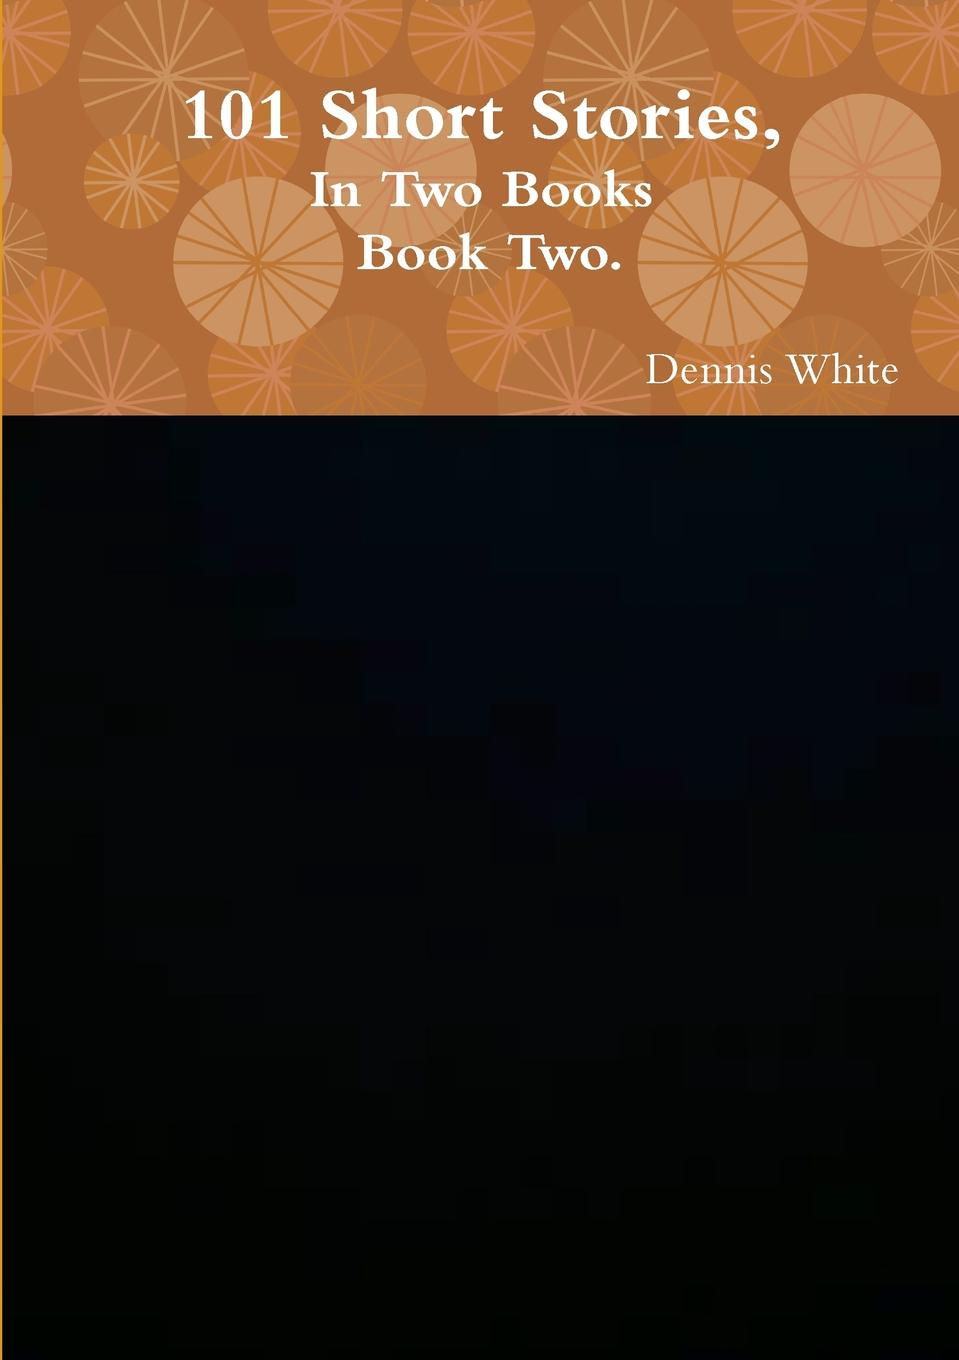 Dennis White 101 Short Stories, (Part Two). some hope